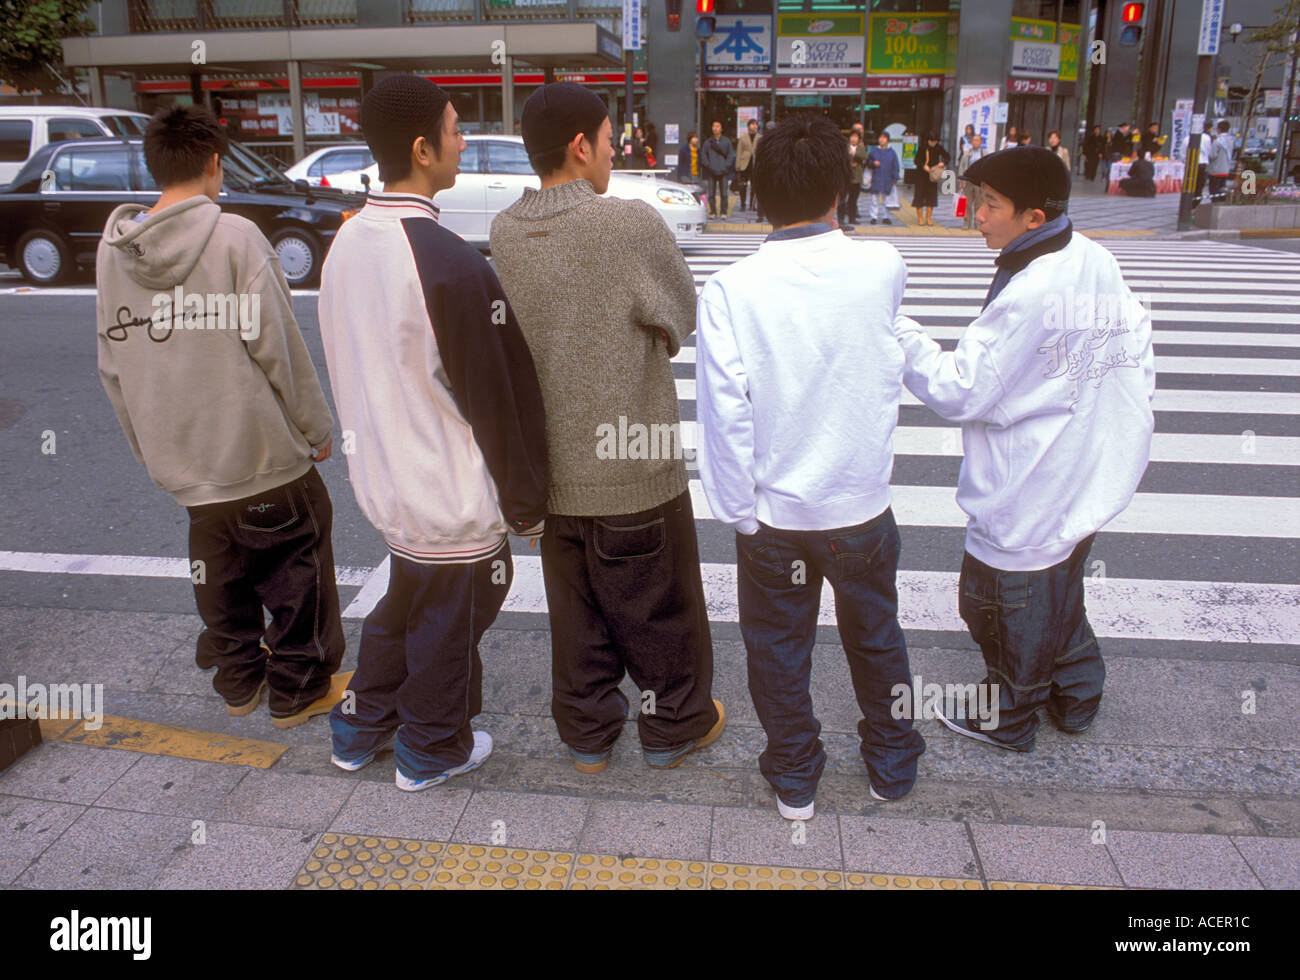 Group of Kyoto hip-hop boys standing on street wearing over-sized baggy clothes trying to be cool Stock Photo